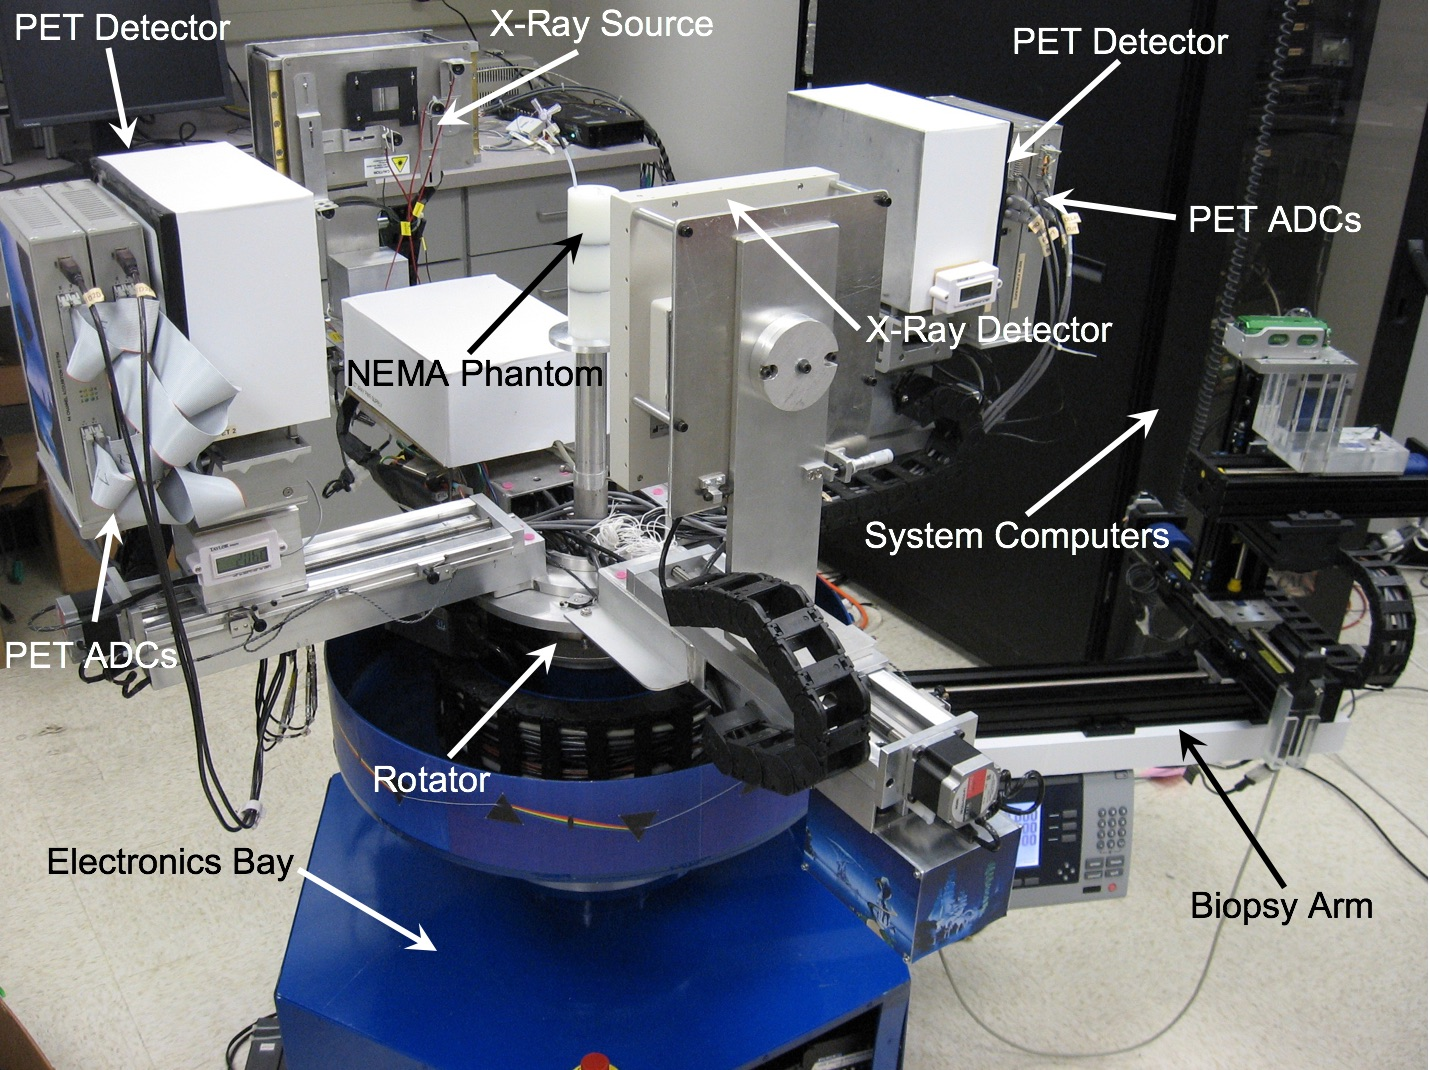 The image has several labeled parts which include PET Detector, X-ray source, Pet Detector, PET ADCs, NEMA Phantom, System Computers, Biopsy Arm, Rotator, and Electronics Bay.